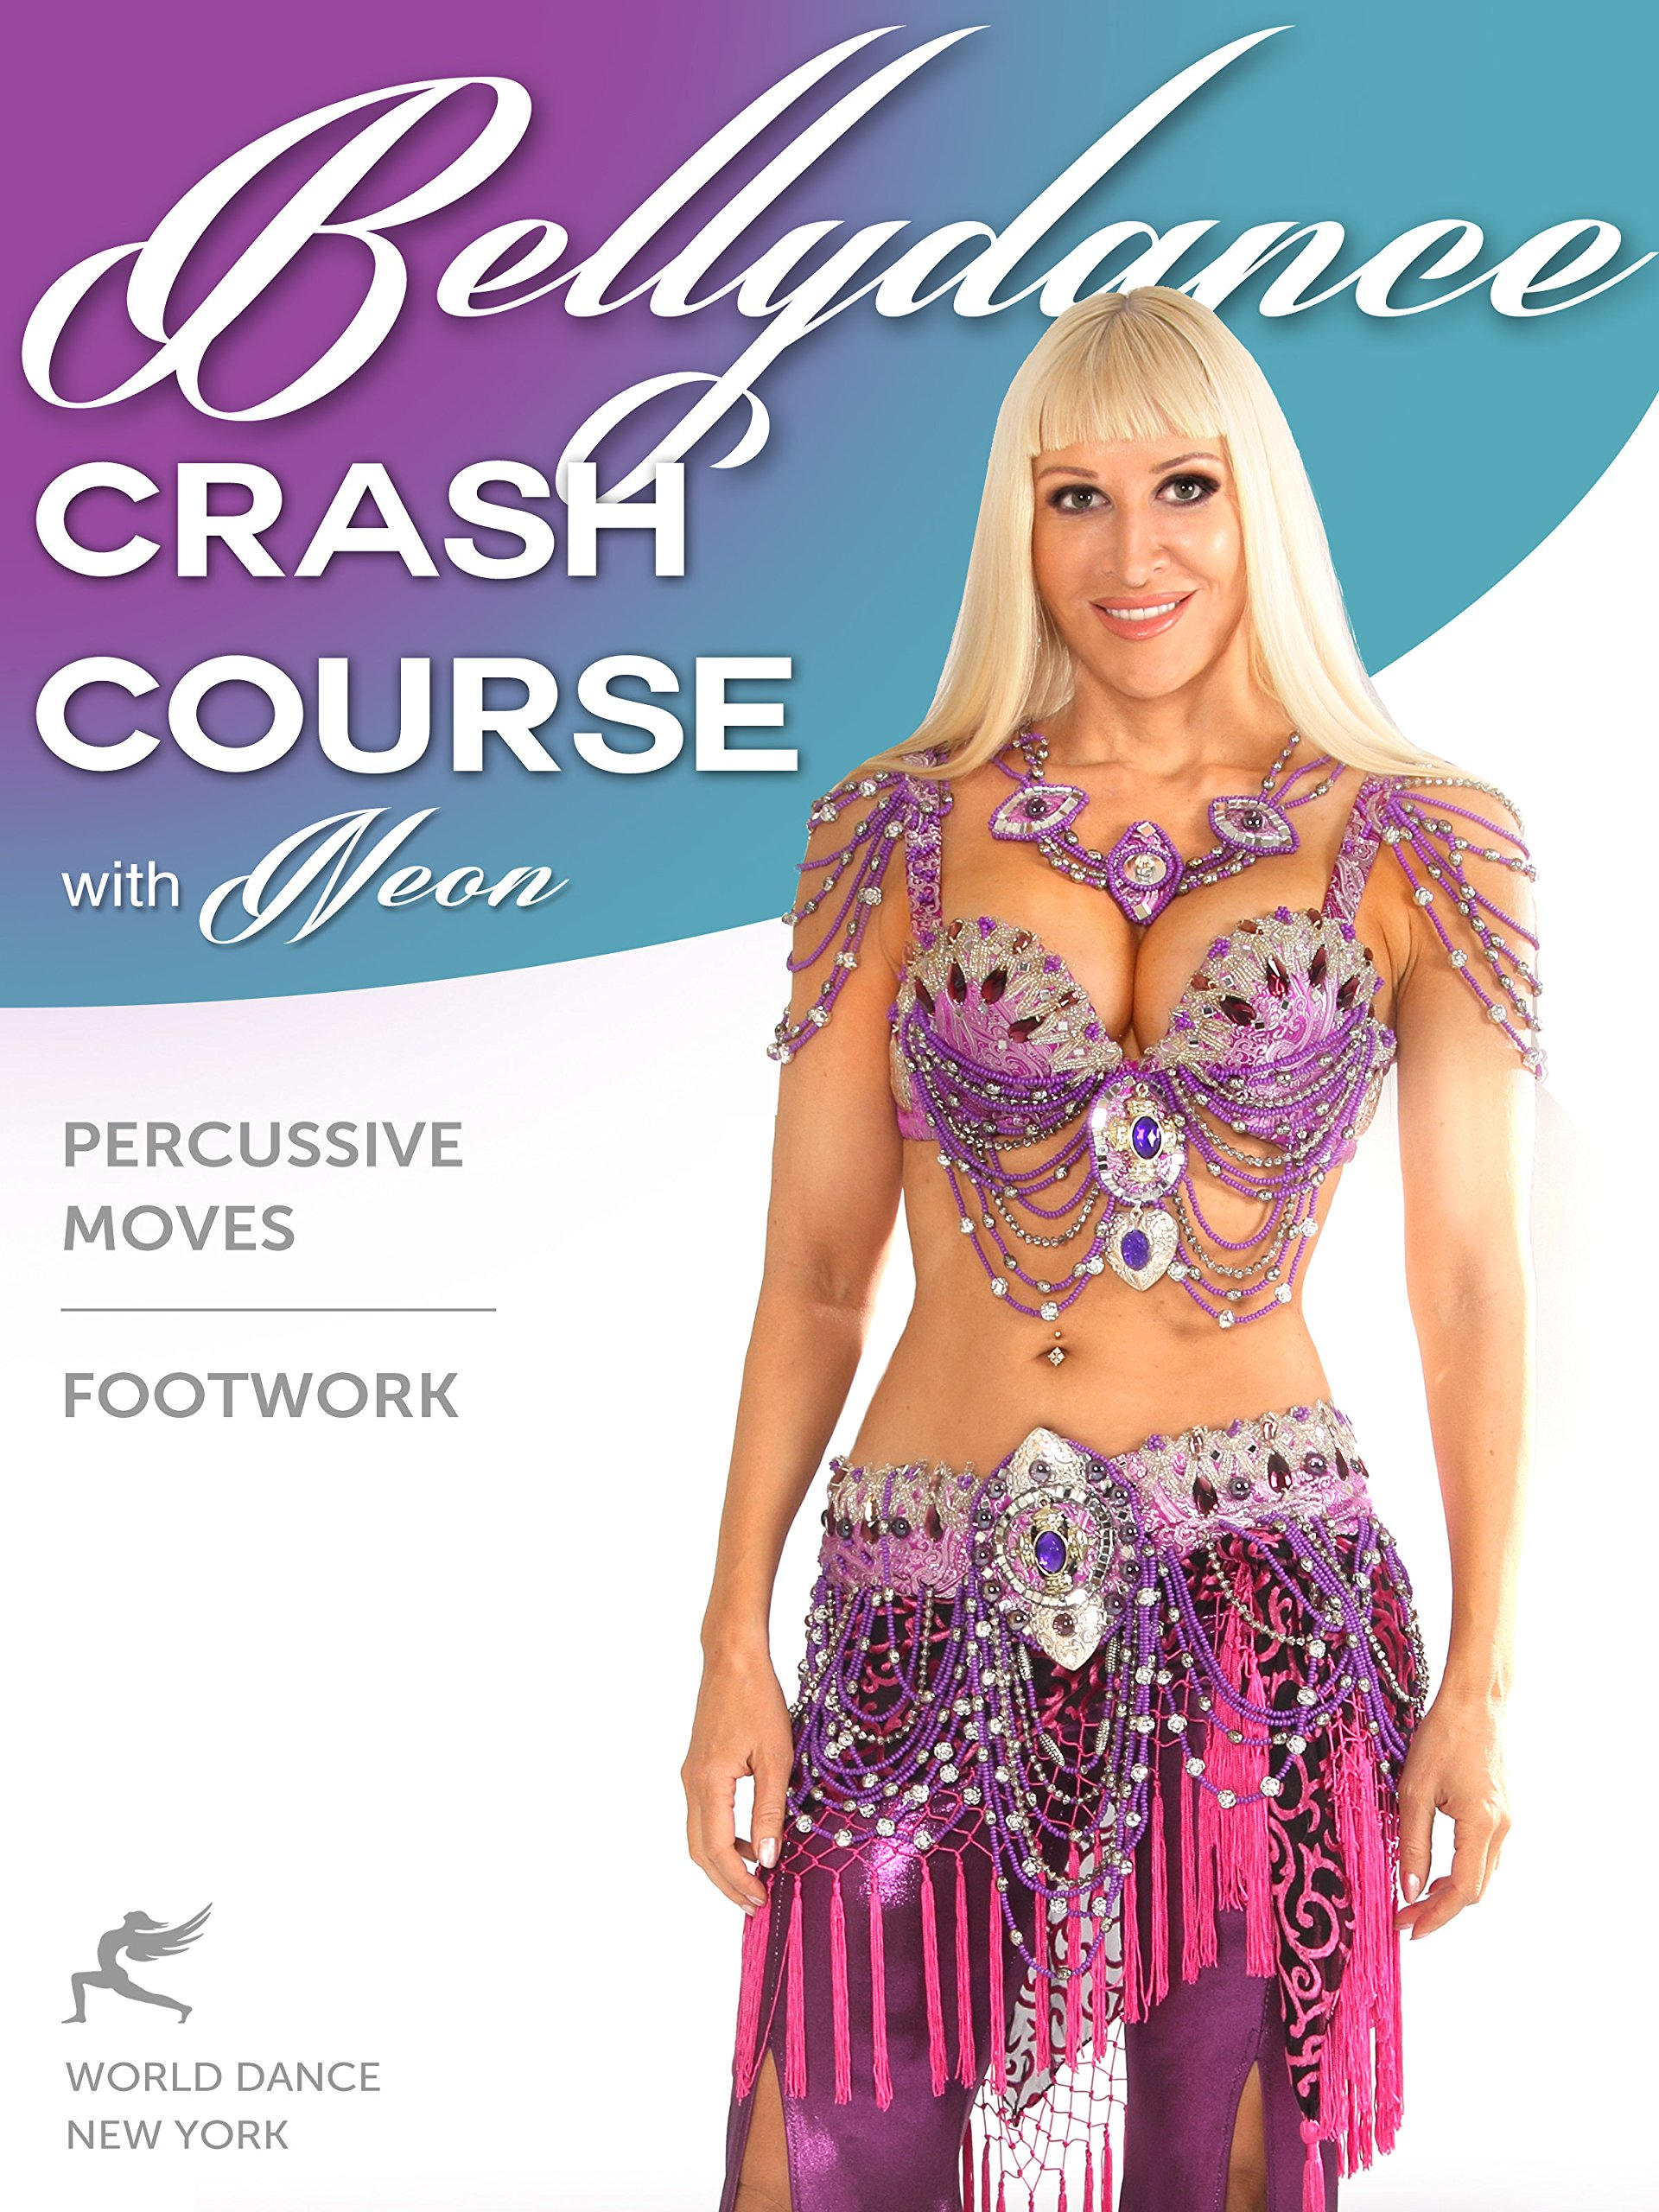 Belly Dance Percussive Moves & Footwork Crash Course with Neon